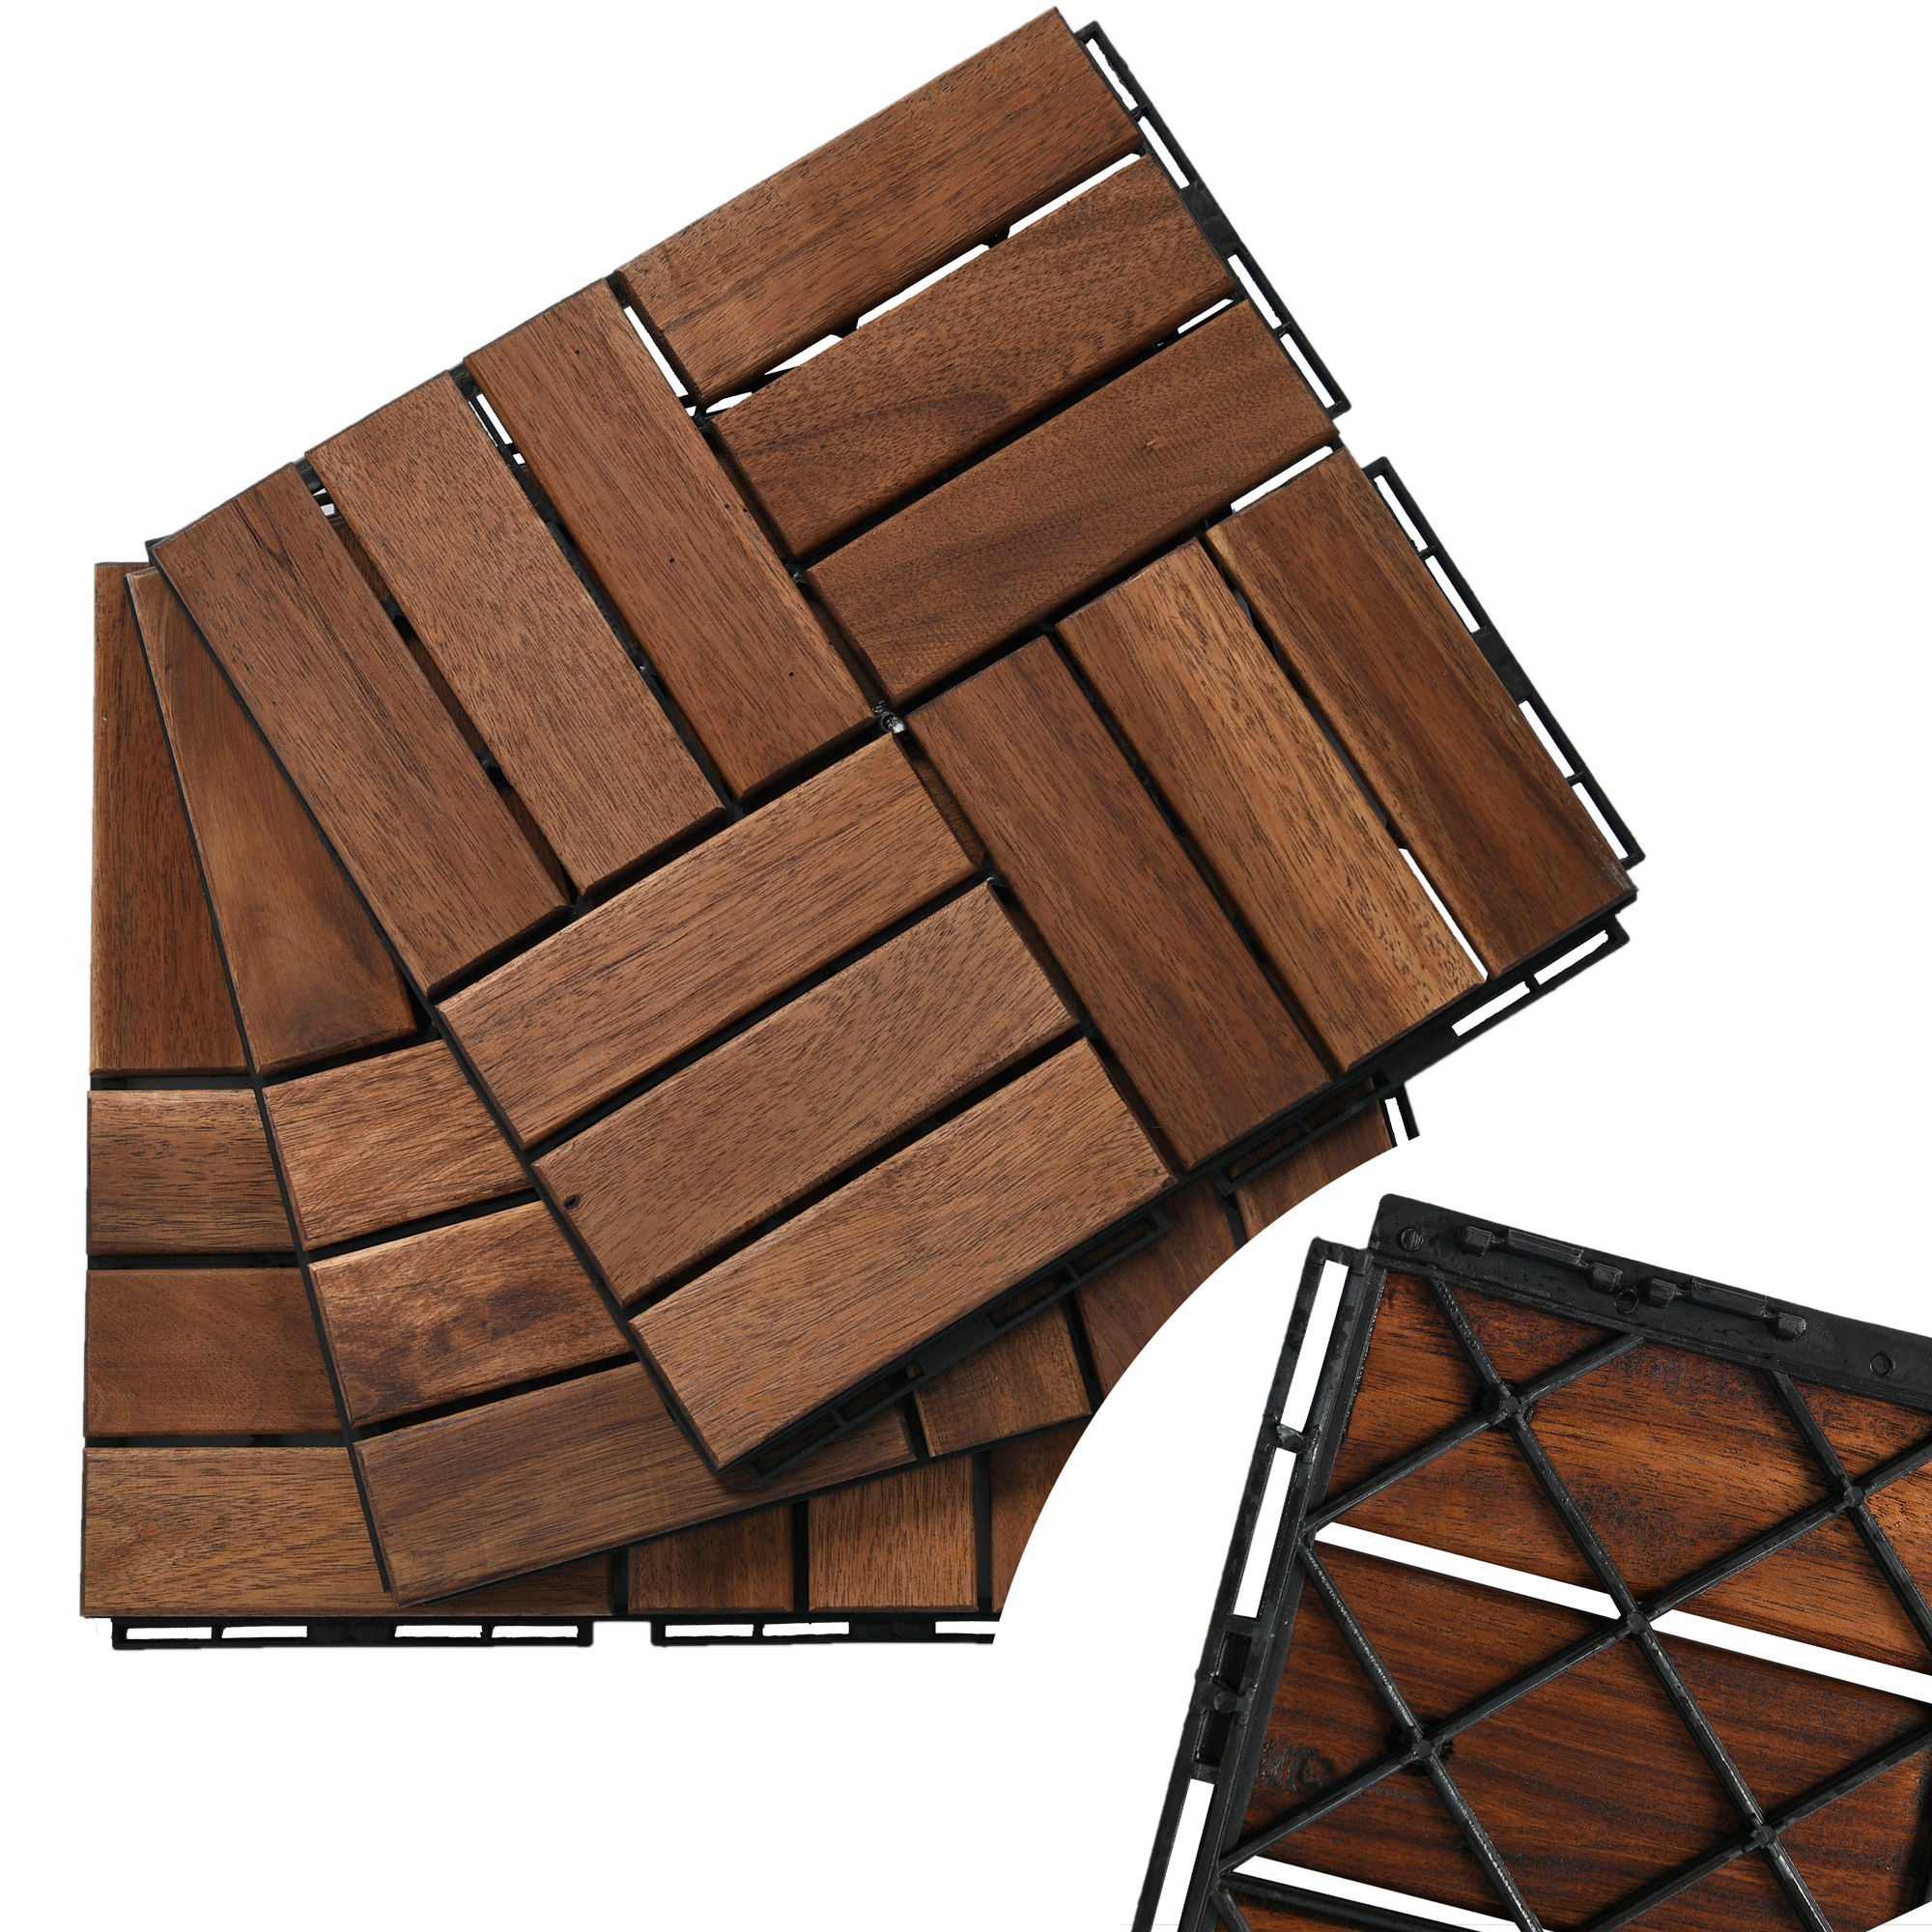 Vietnam High Quality Wood Deck Tiles 30x30x1.9 cm - Long Lasting Interlockking Outdoor Decking by Oil Coating